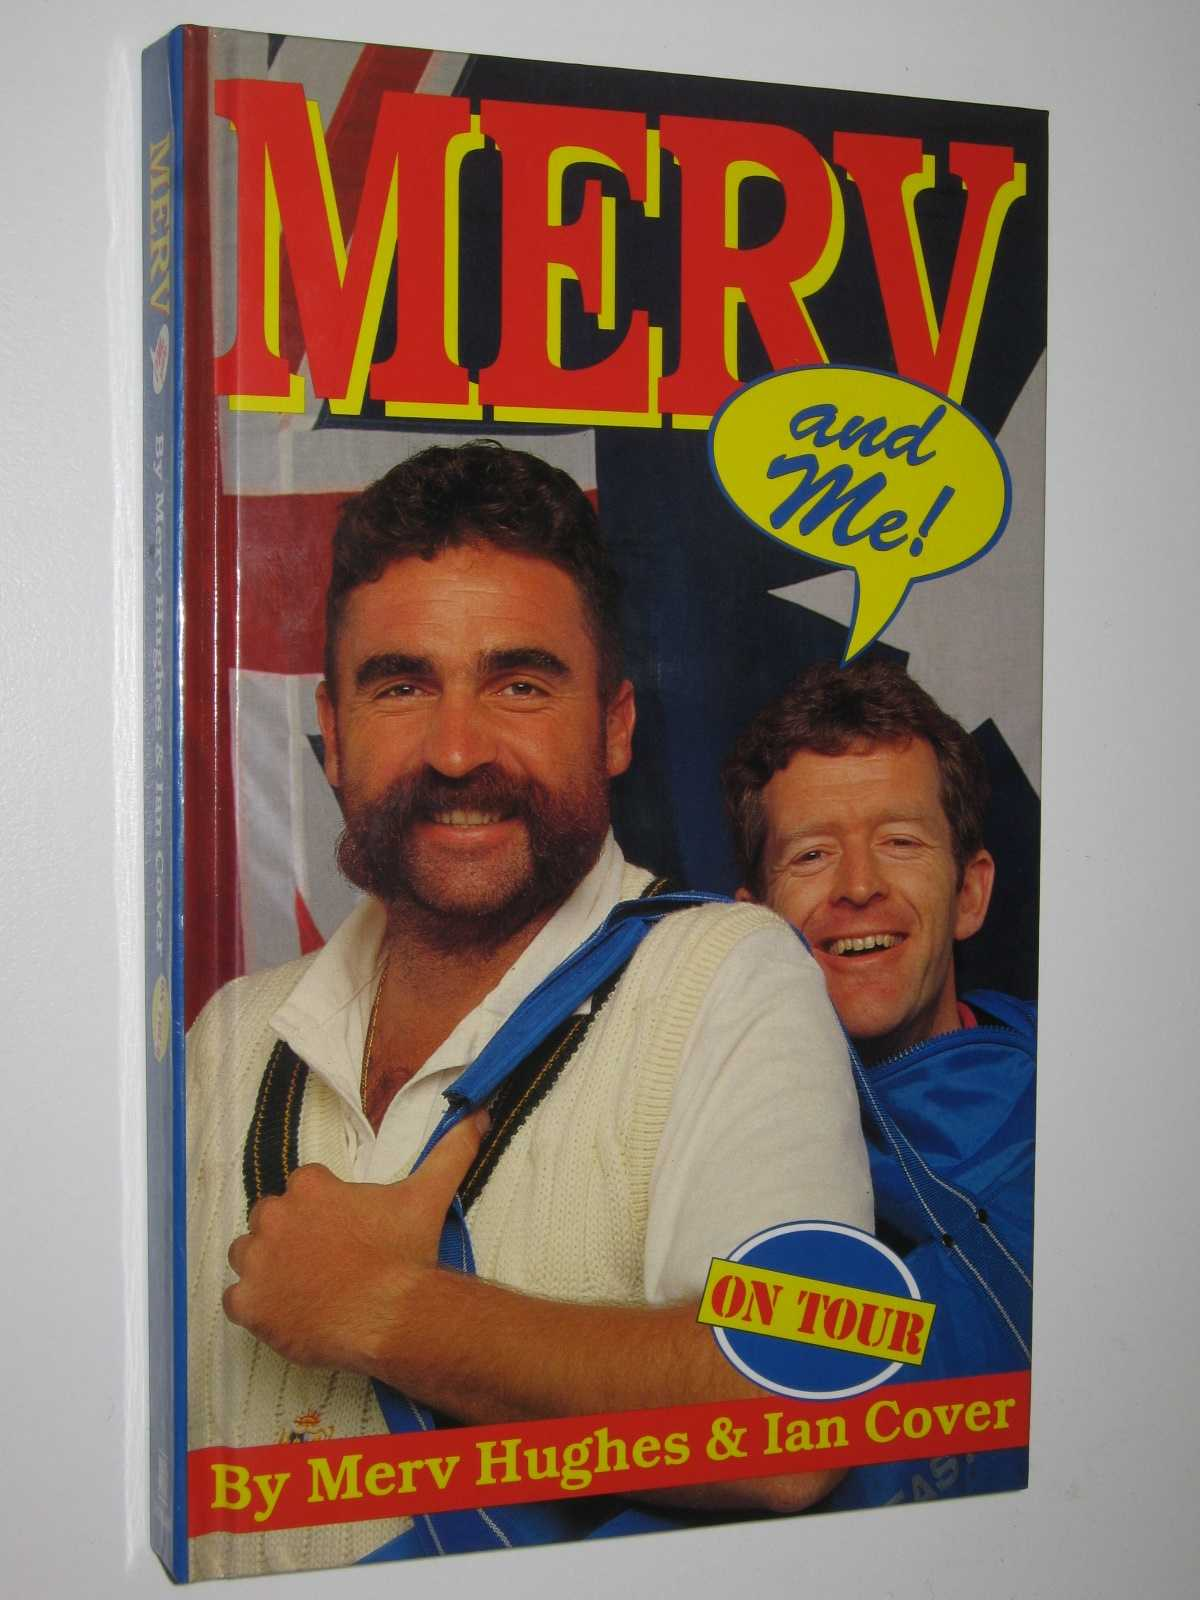 Image for Merv and Me! On Tour